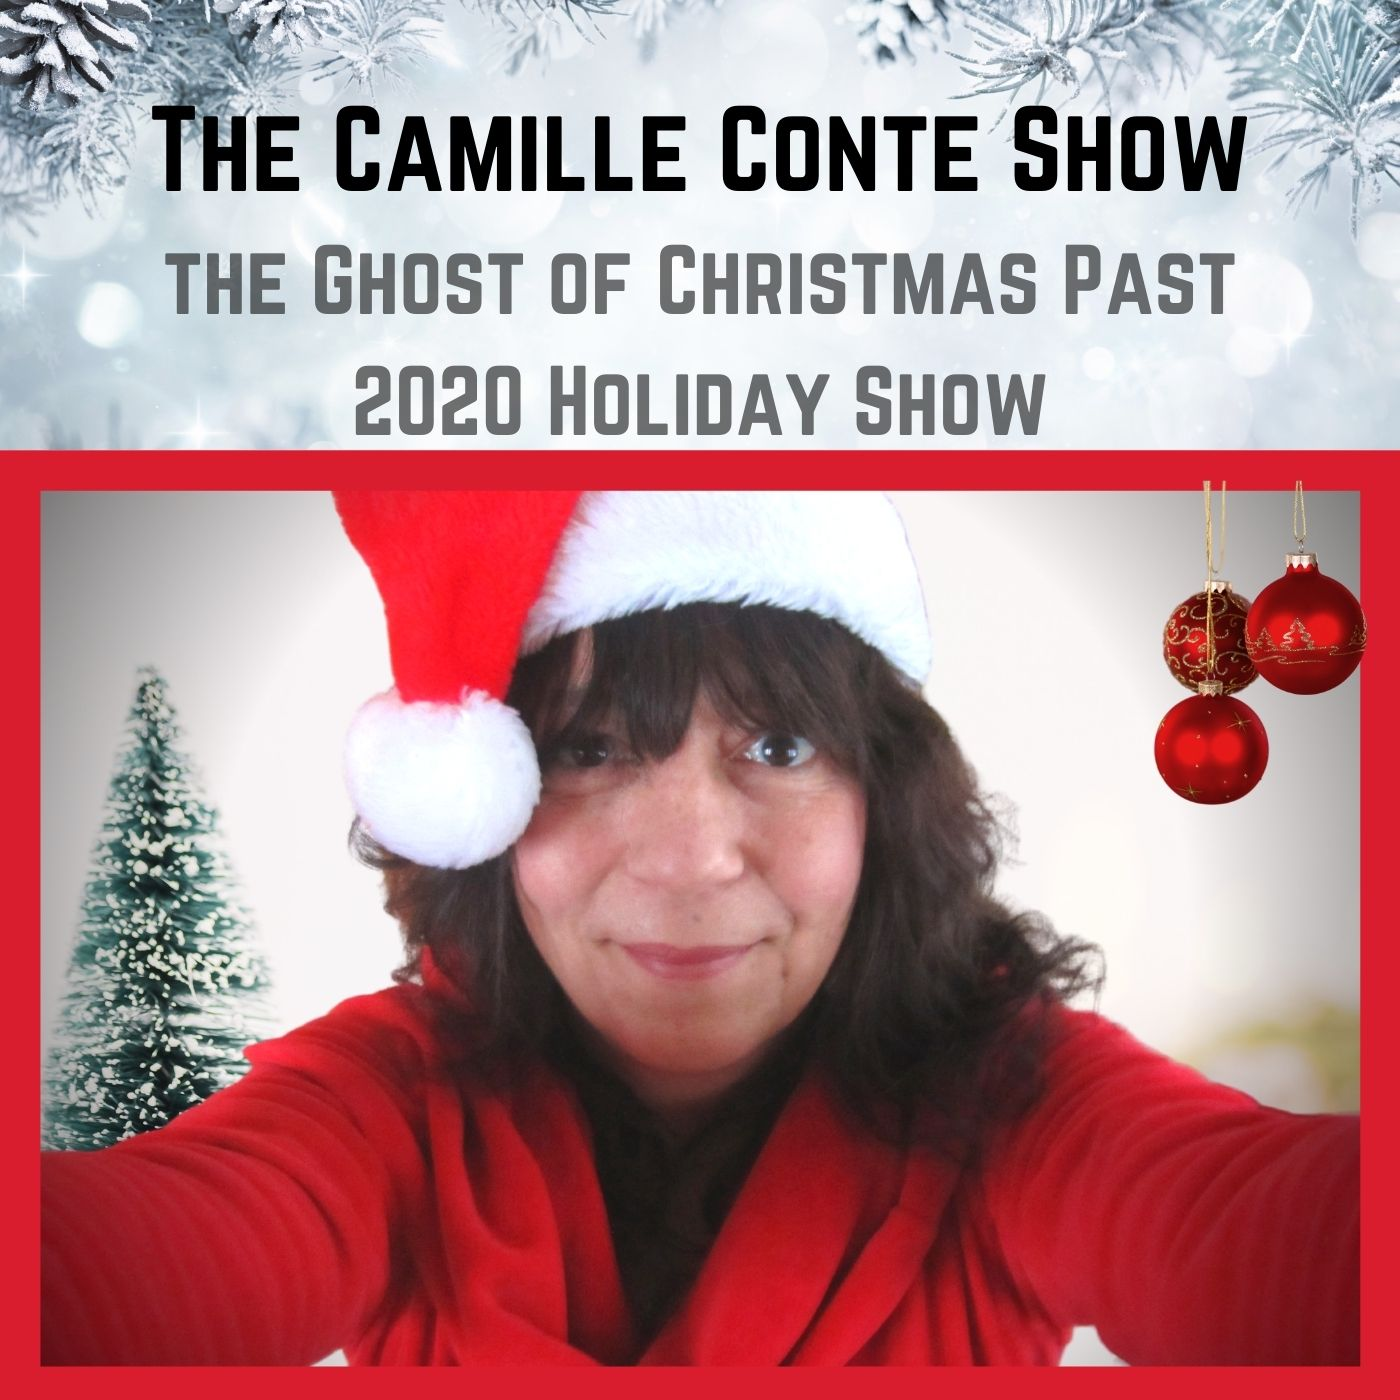 The 2020 Holiday Show - The Ghost of Christmas Past